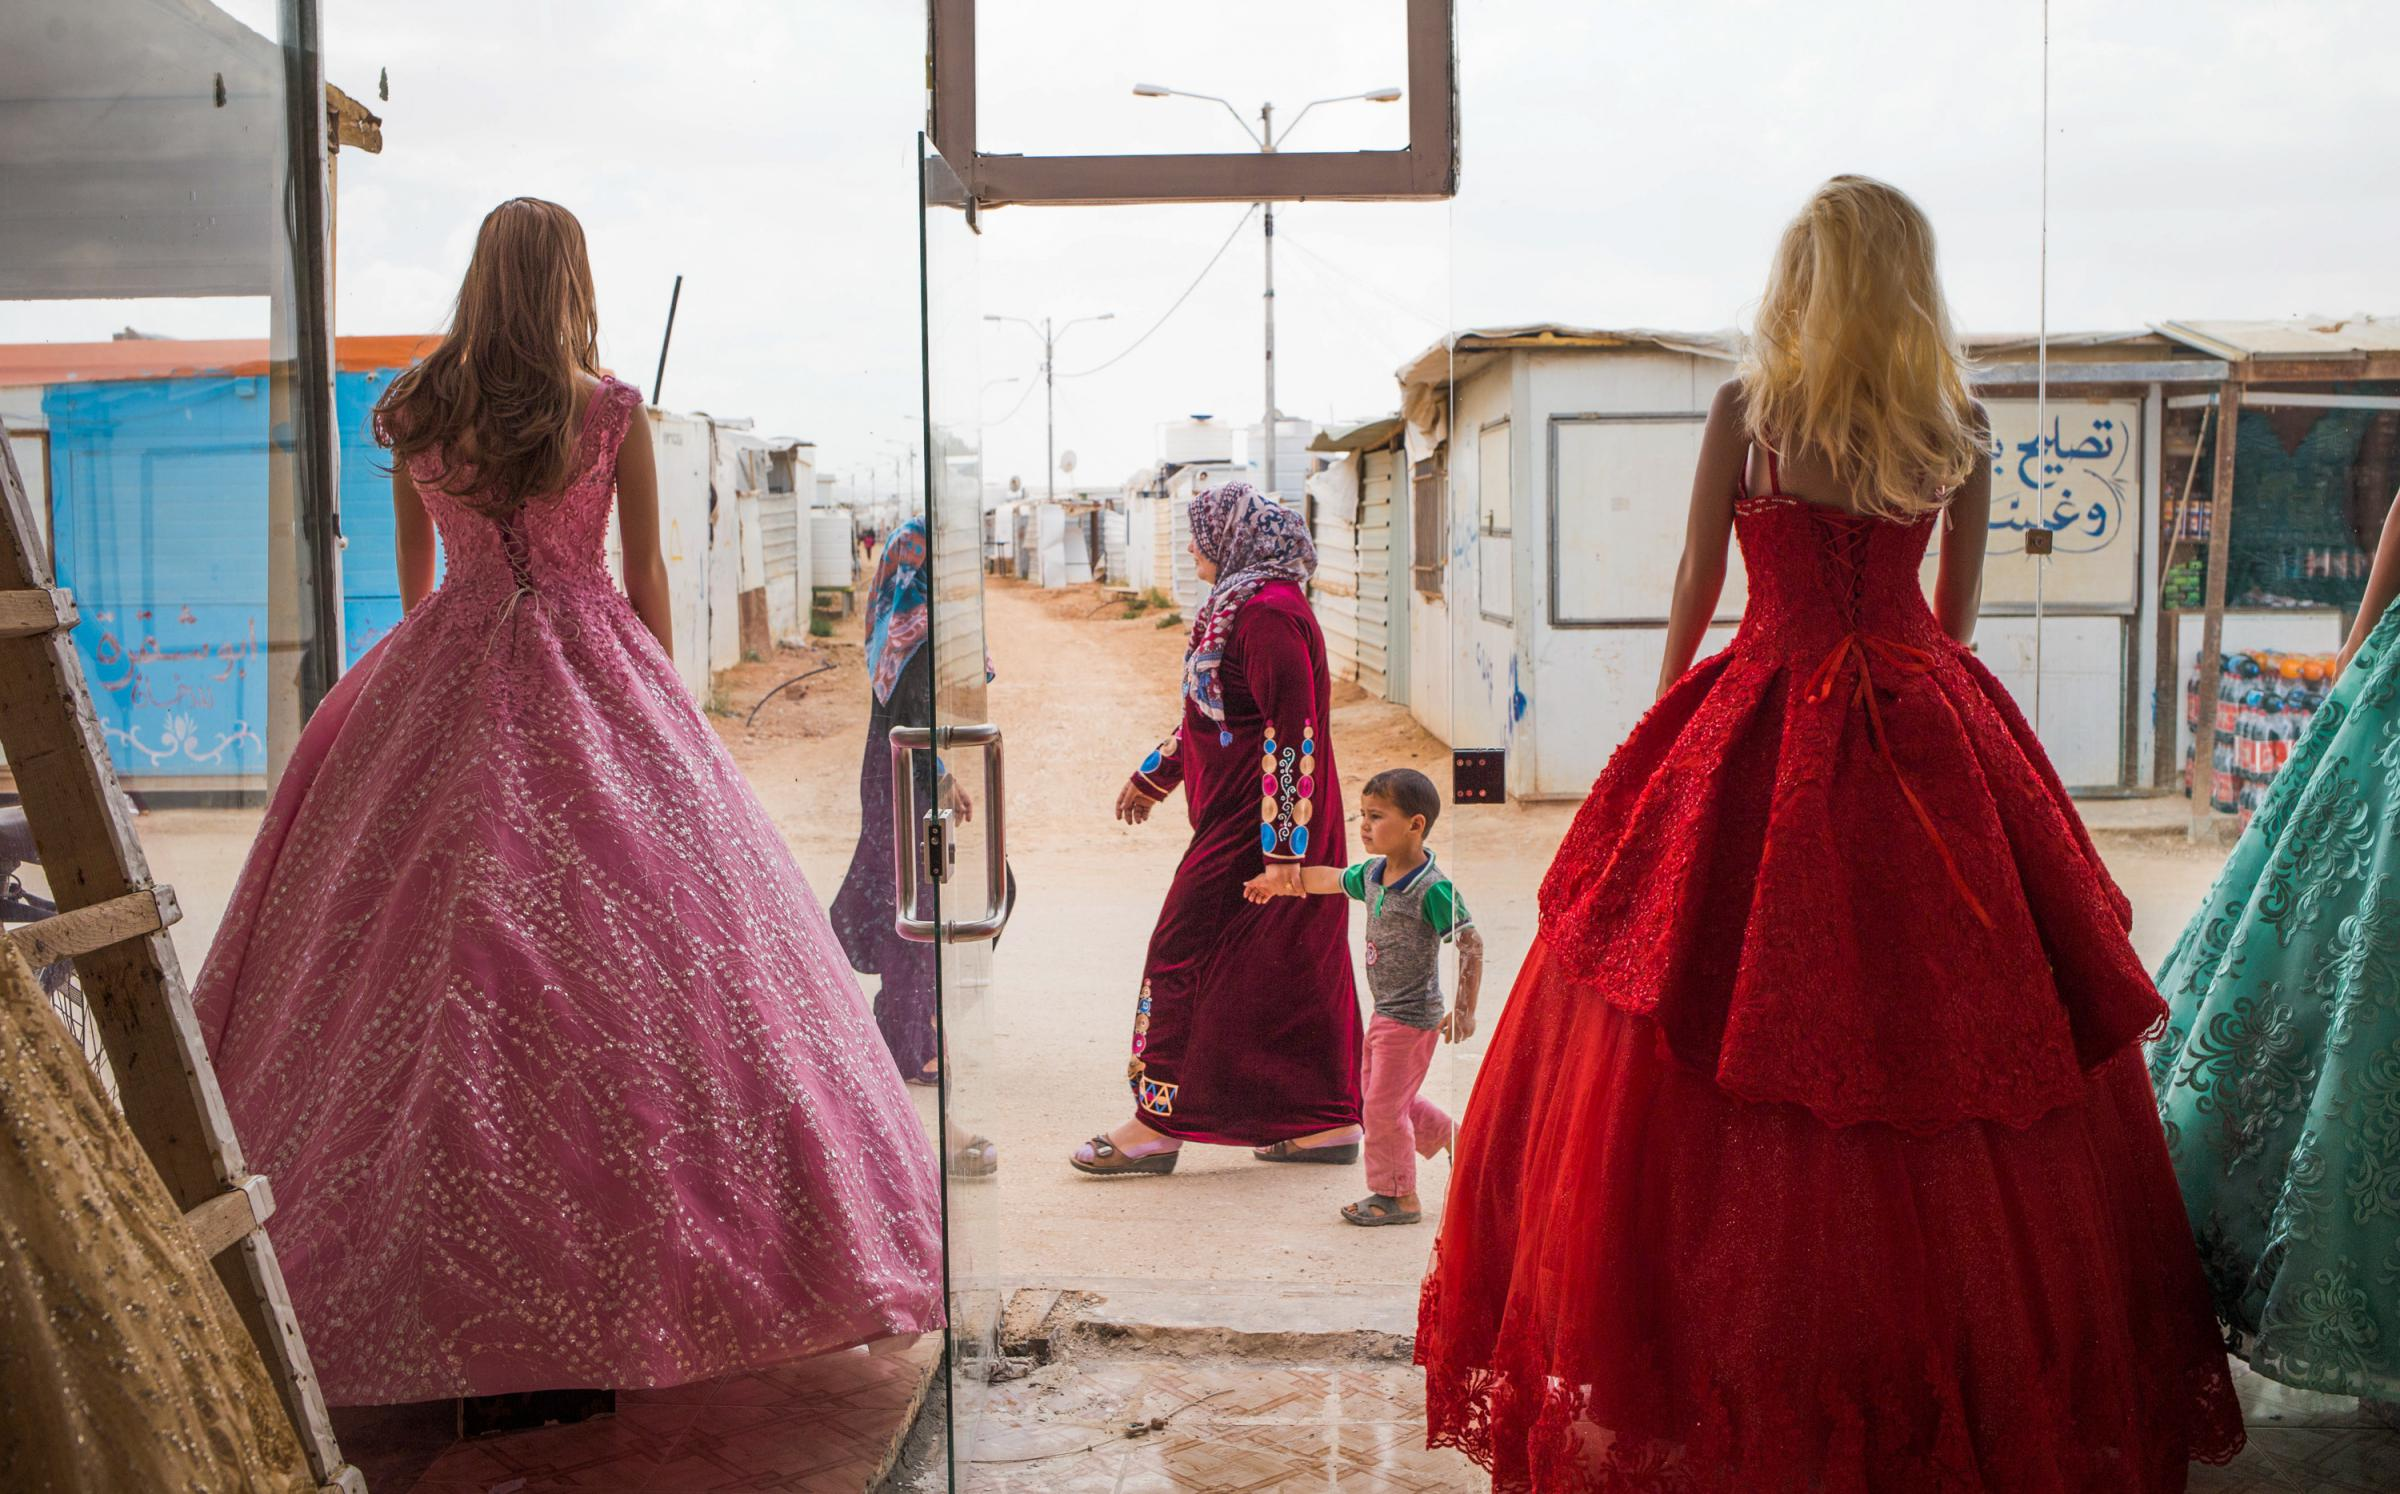 Refugees Say Yes To The Rental Wedding Dress | KDNK